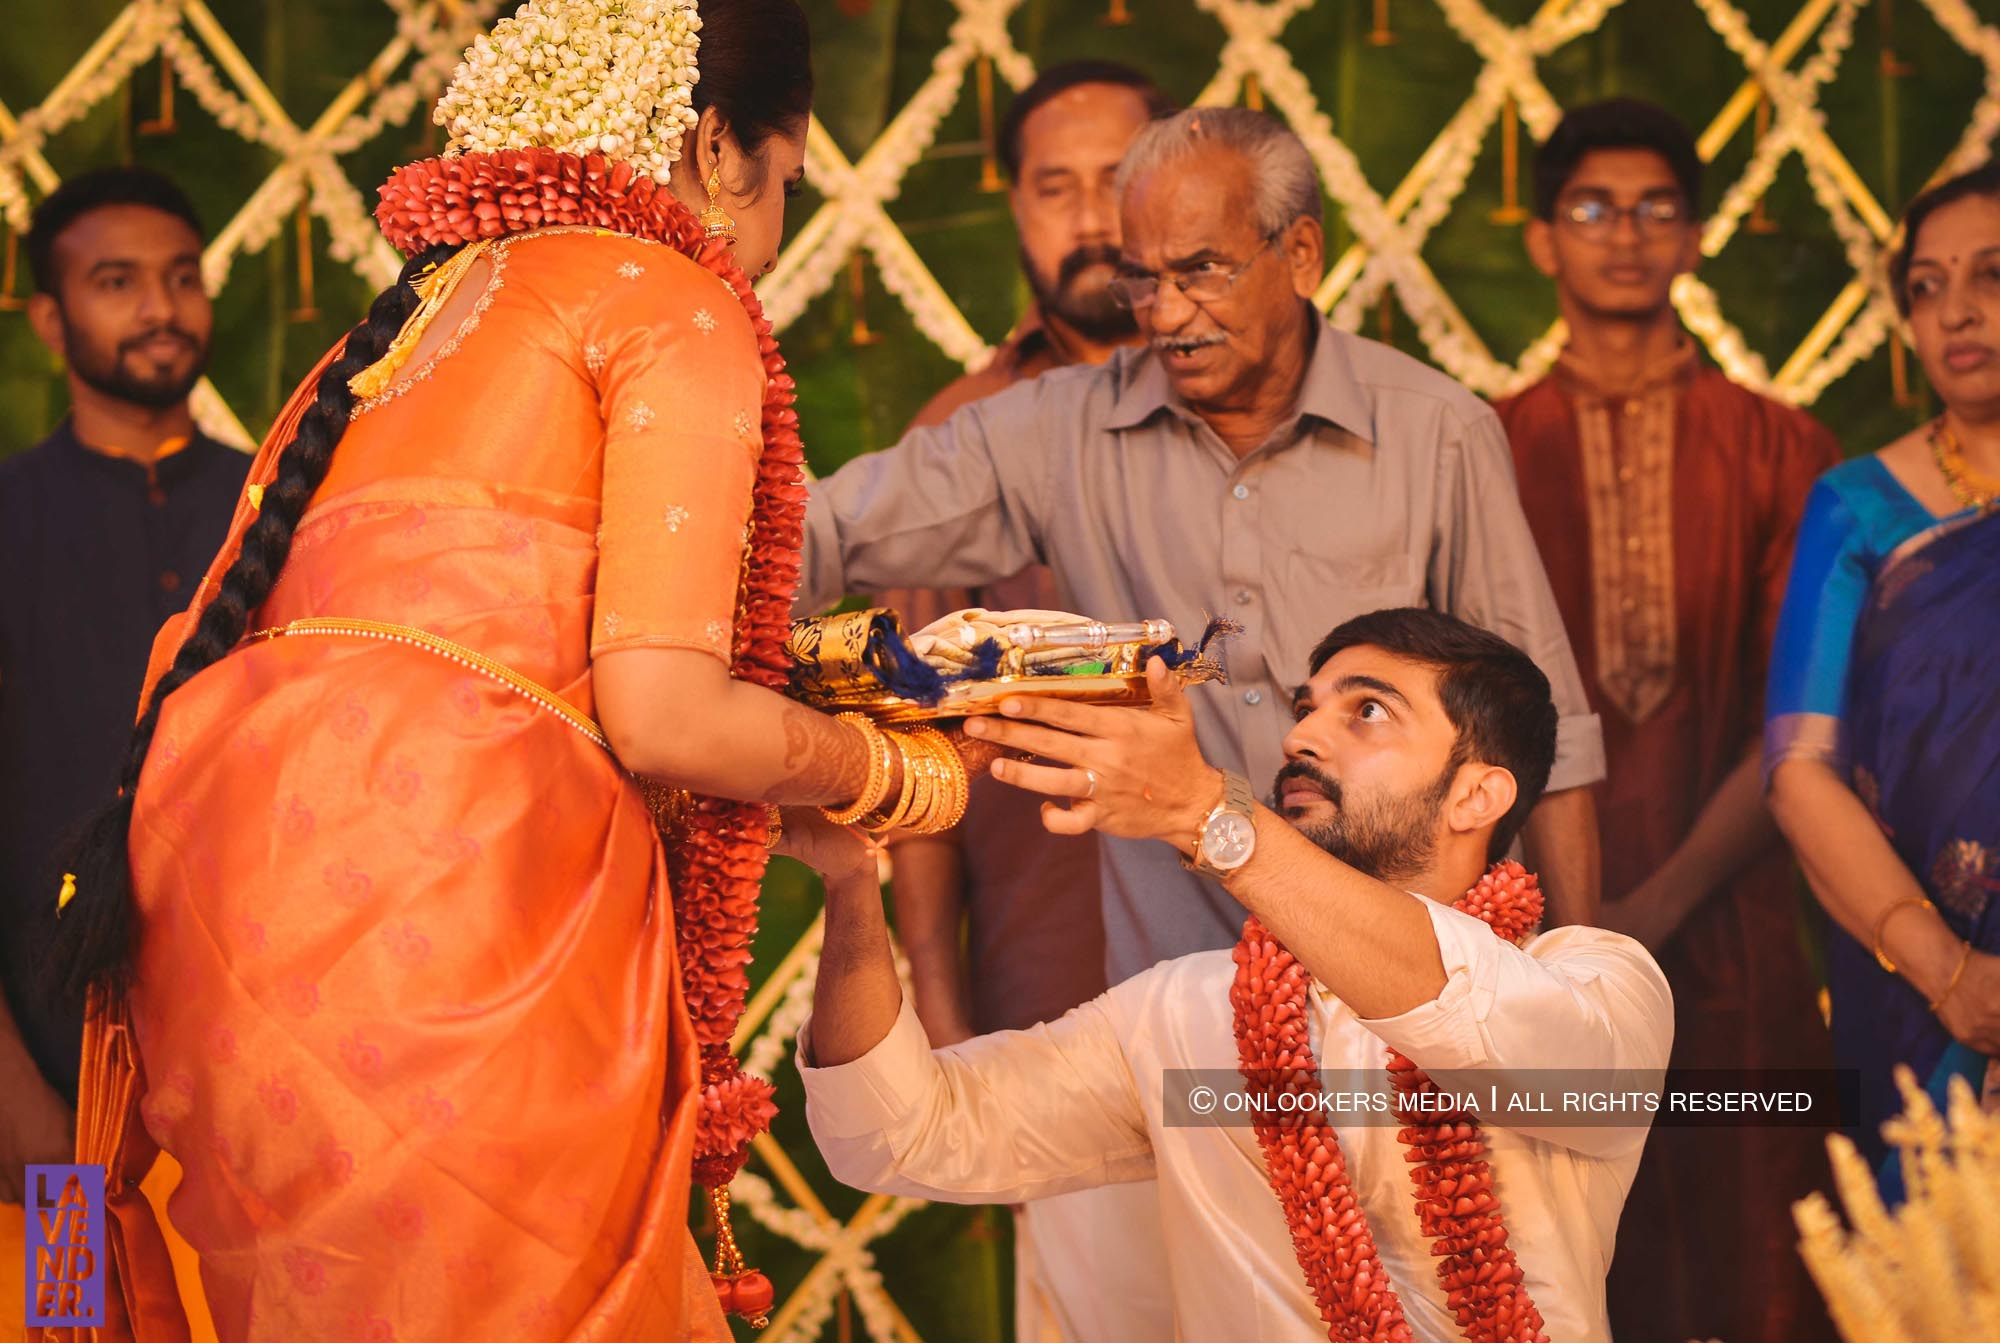 http://onlookersmedia.in/wp-content/uploads/2018/05/sreejith-vijay-wedding-stills-images-57.jpg